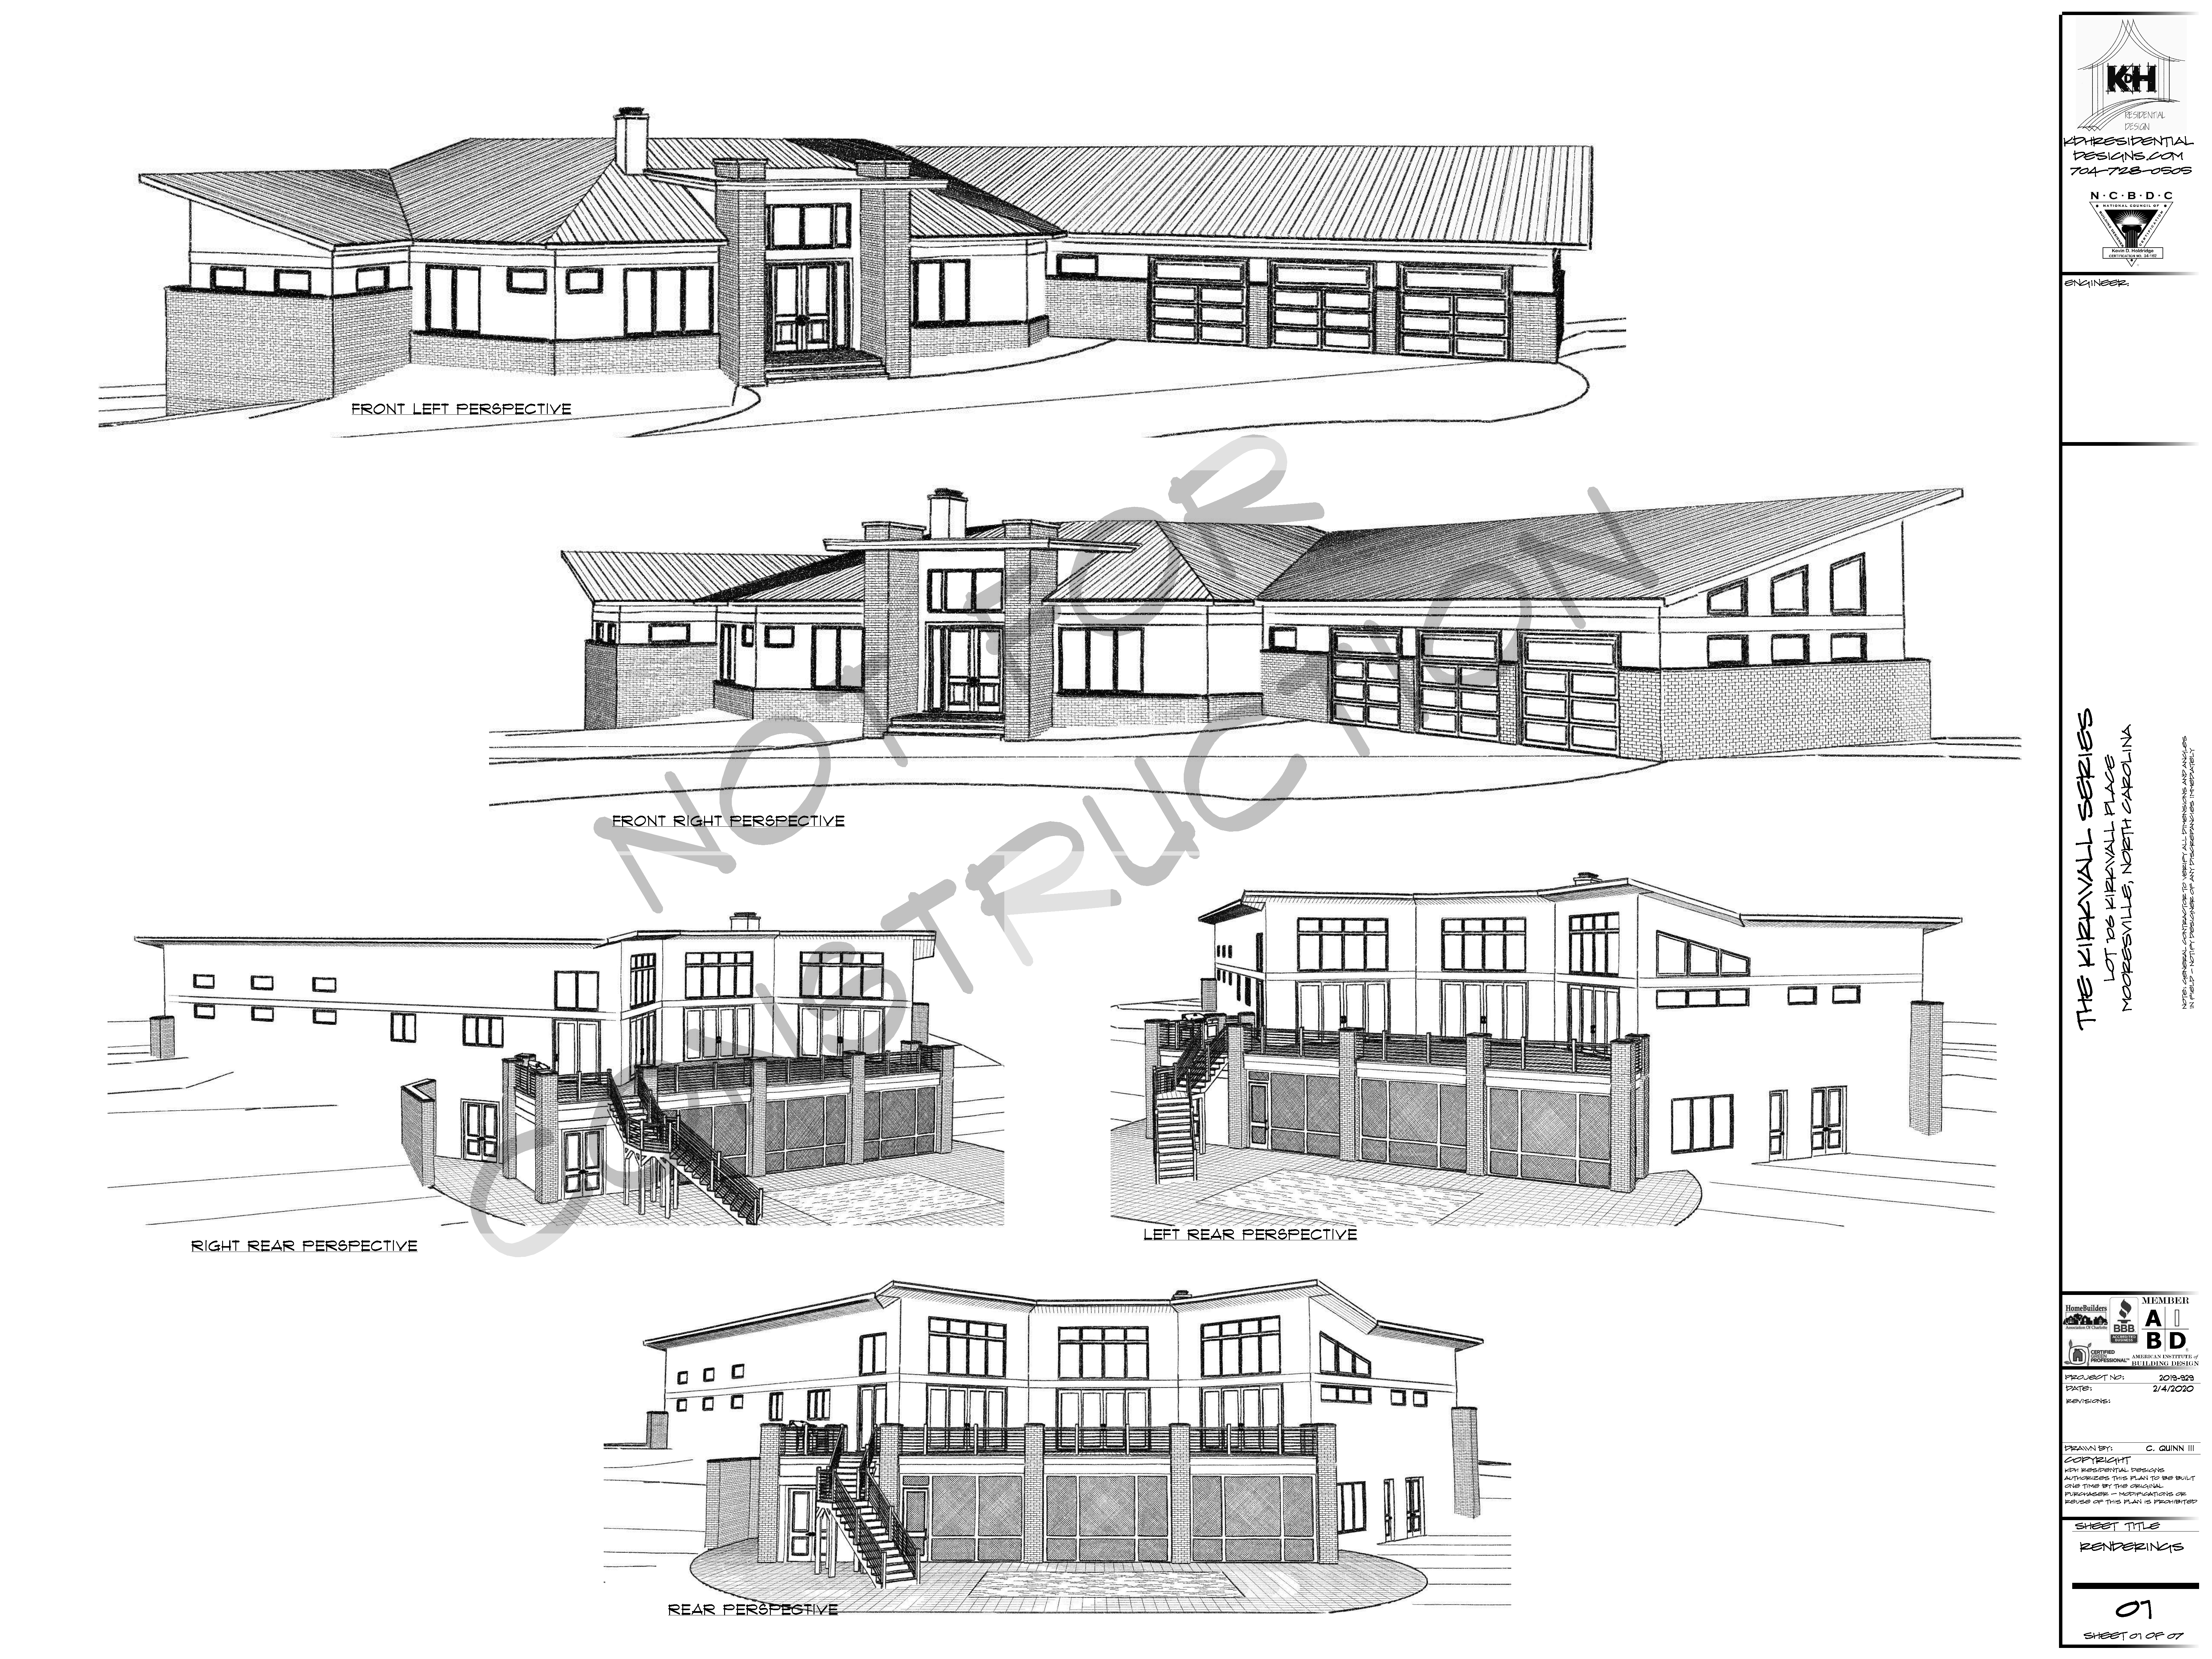 More Renderings of Proposed Home